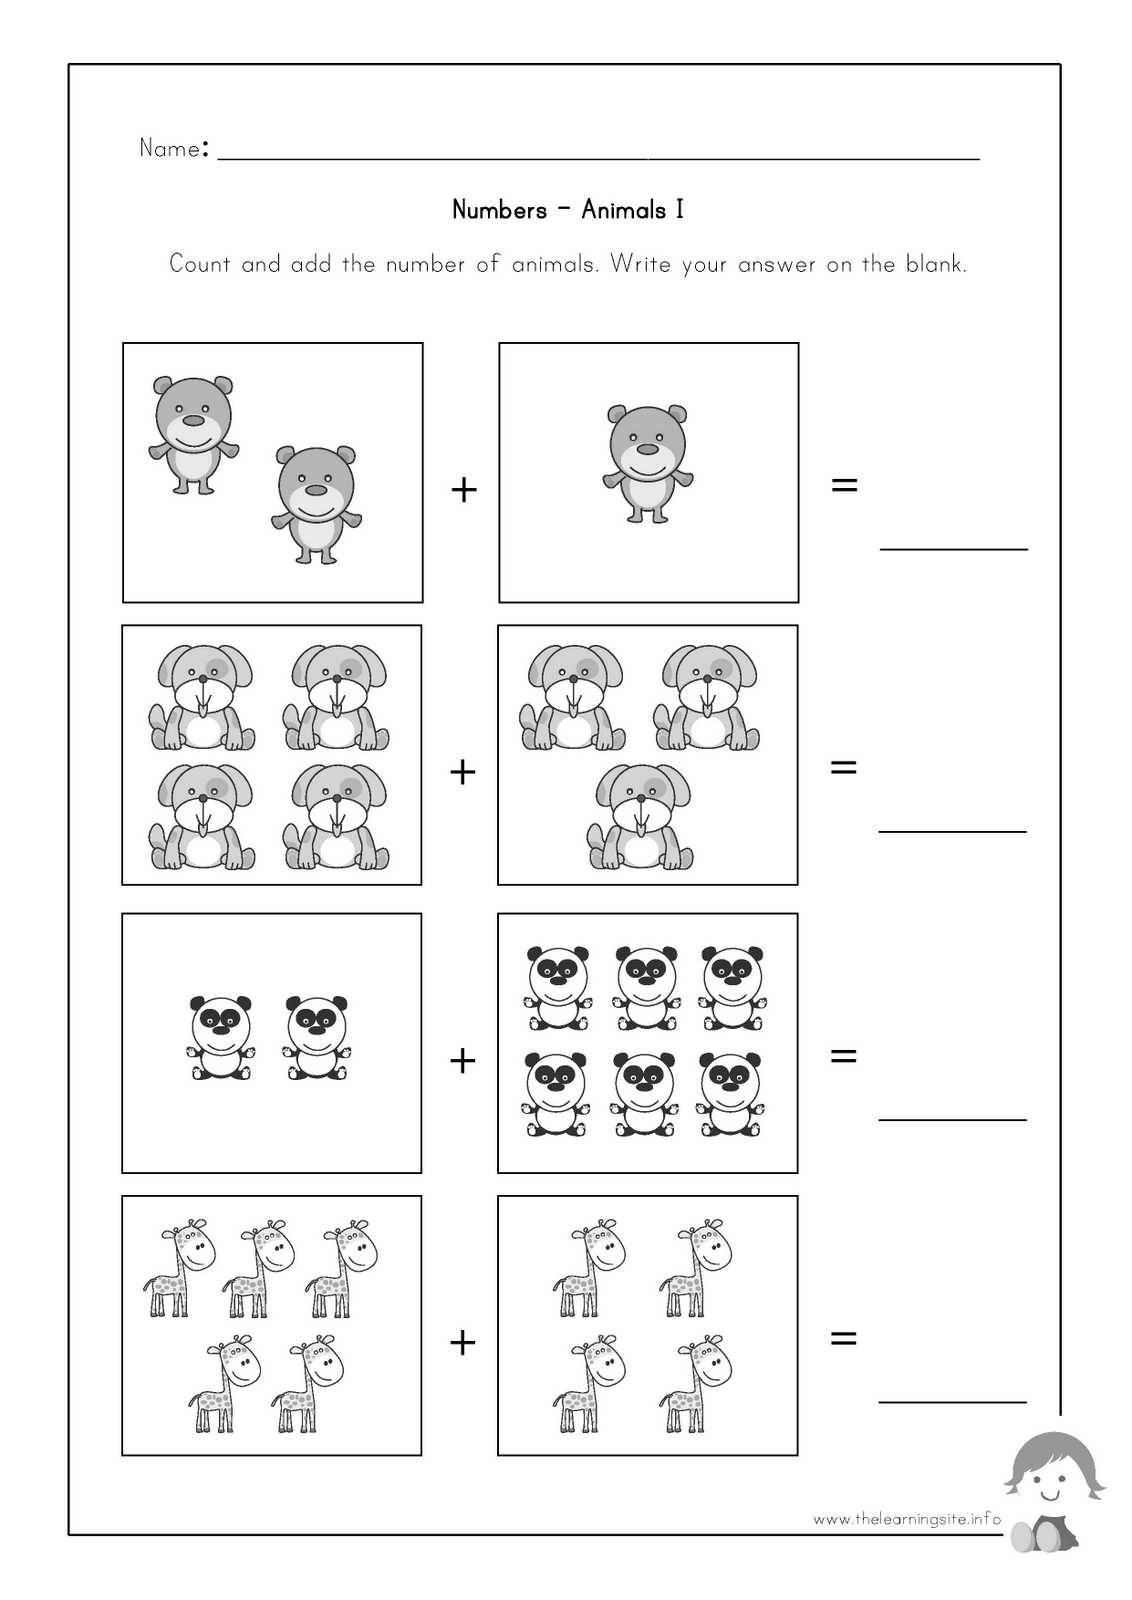 12 Best Images Of Starfall Worksheets For Kindergarten